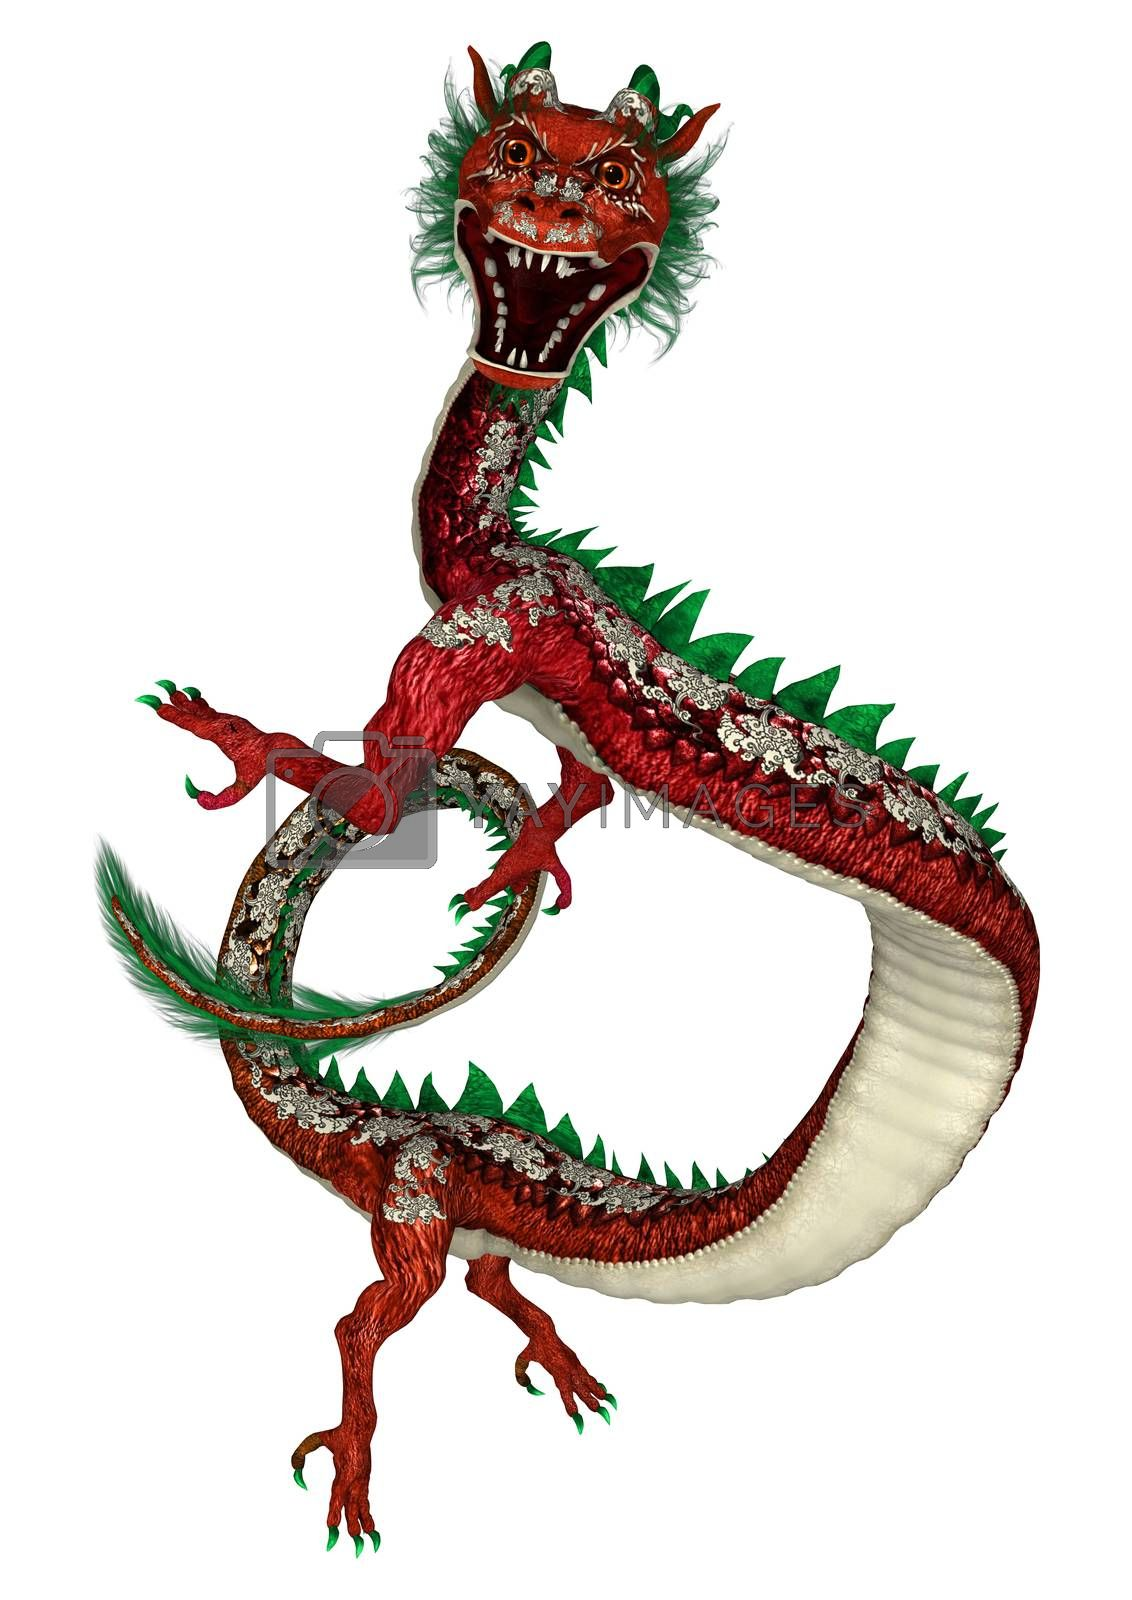 Royalty free image of Eastern Dragon by Vac